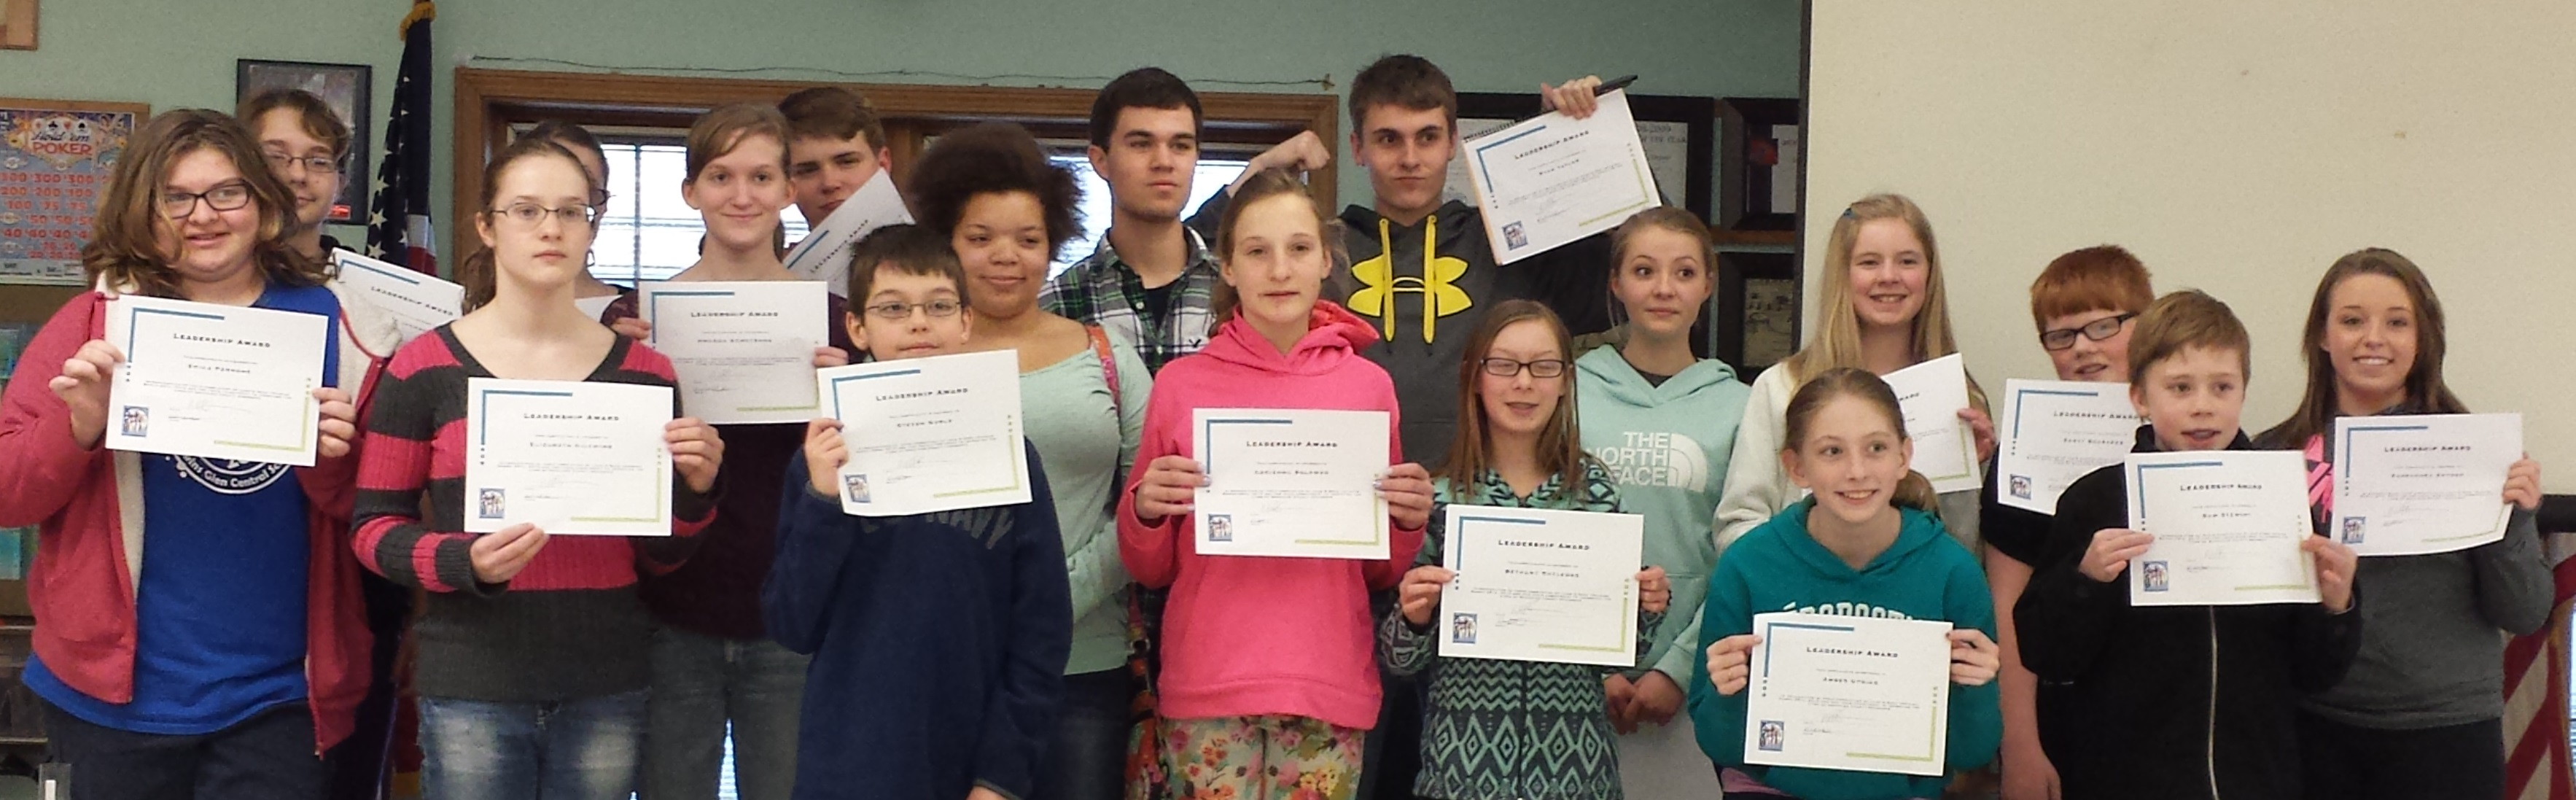 Youth leaders display awards earned at training